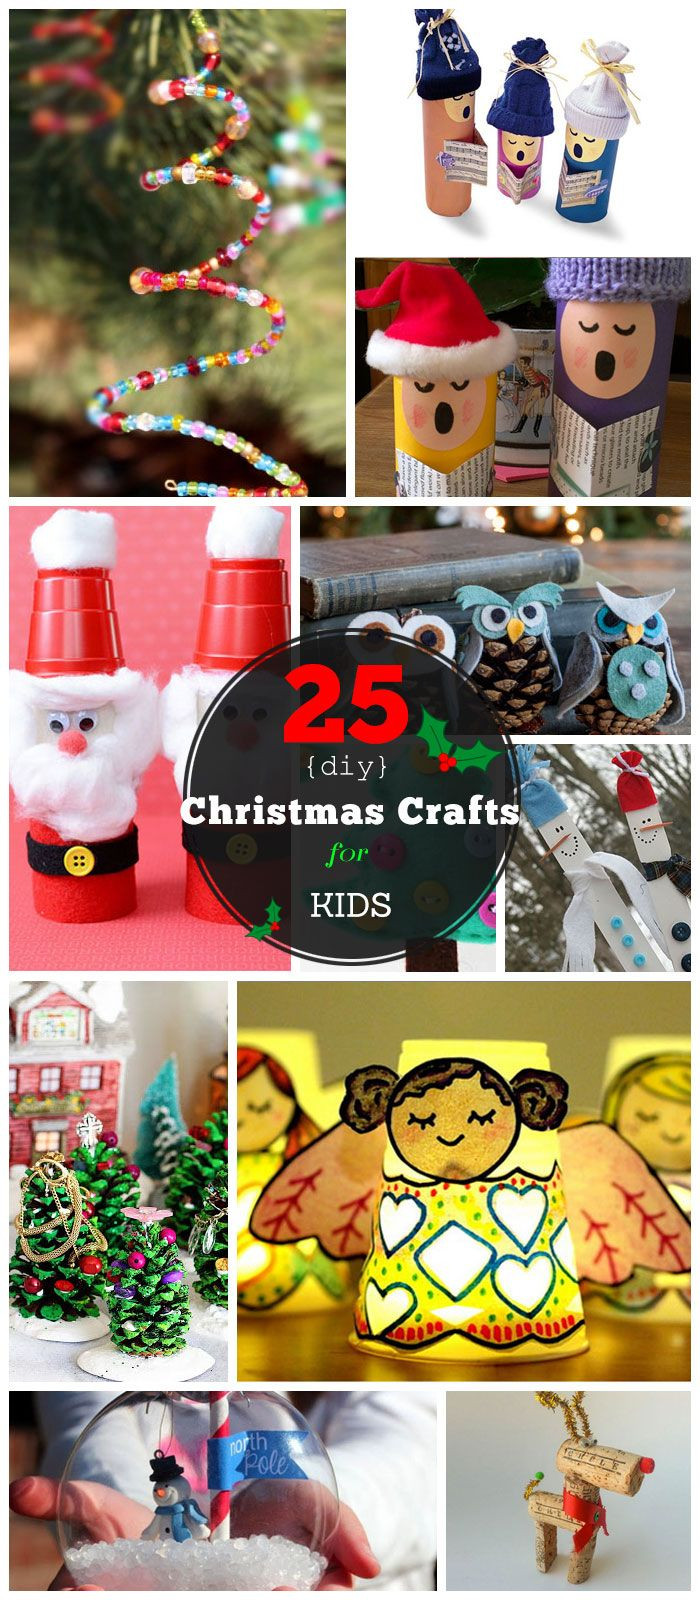 Best ideas about Christmas DIY For Kids . Save or Pin 30 Christmas Crafts For Kids to Make DIY Now.